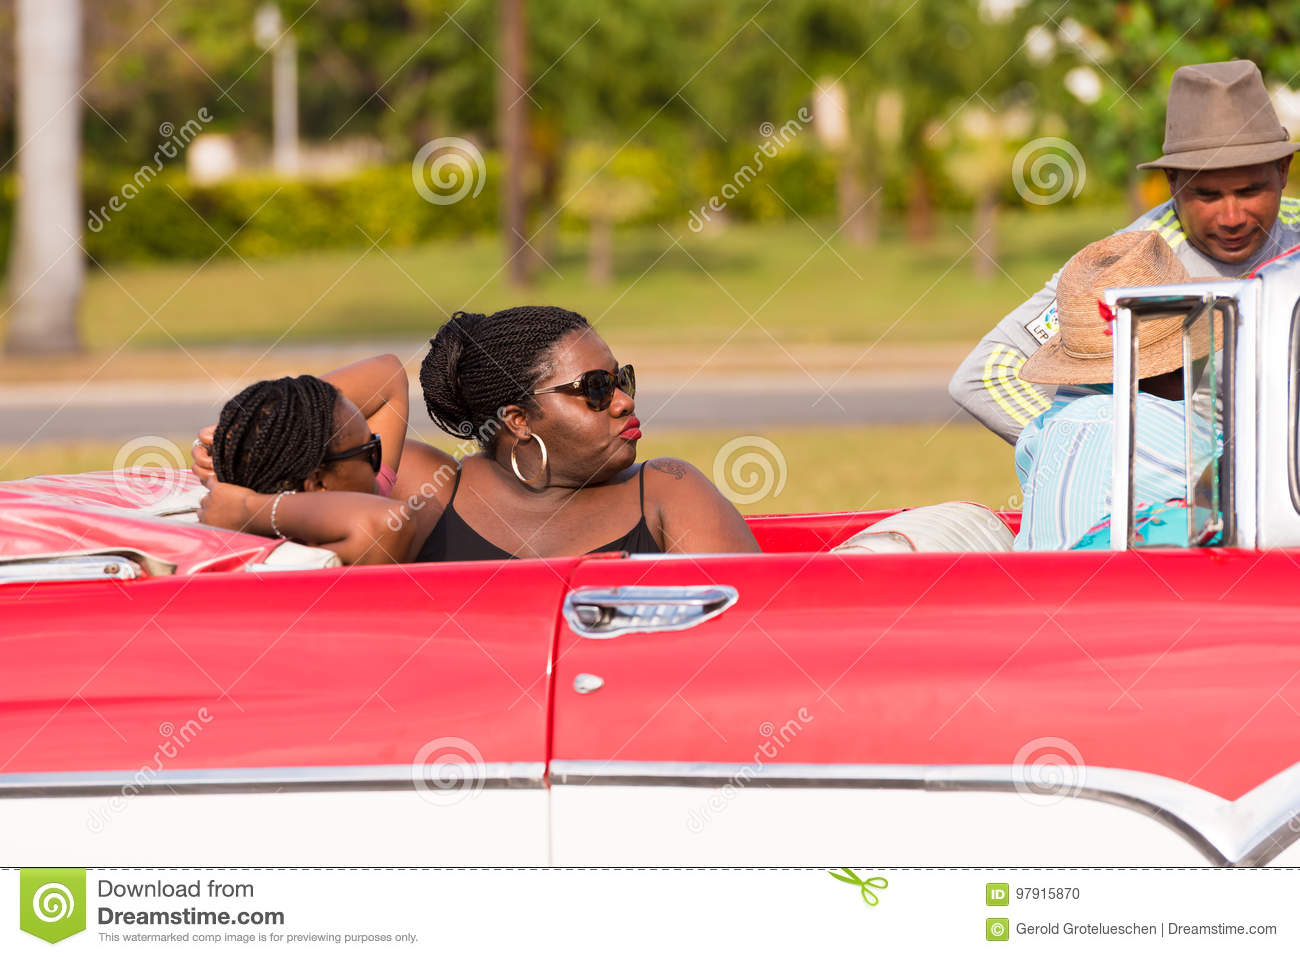 CUBA, HAVANA - MAY 5, 2017: African women in a convertible. Close-up.